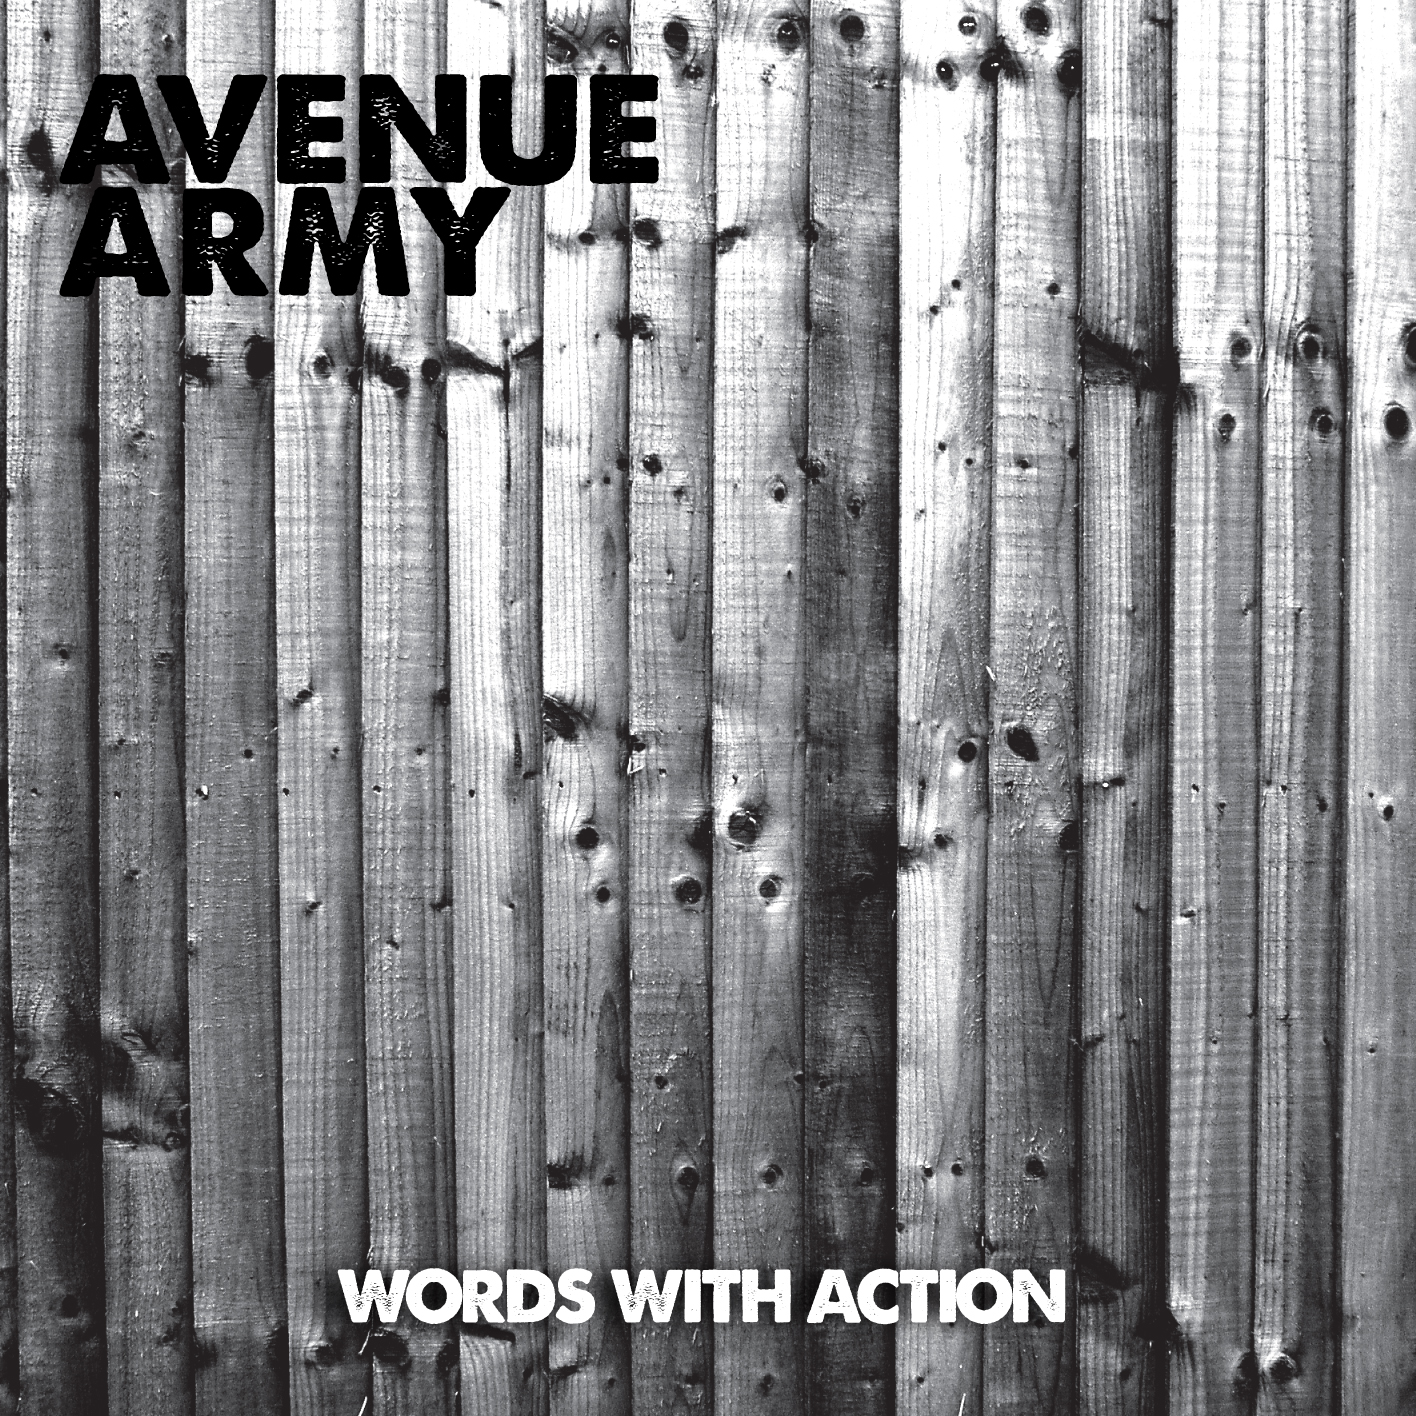 avenue army words with action.jpg